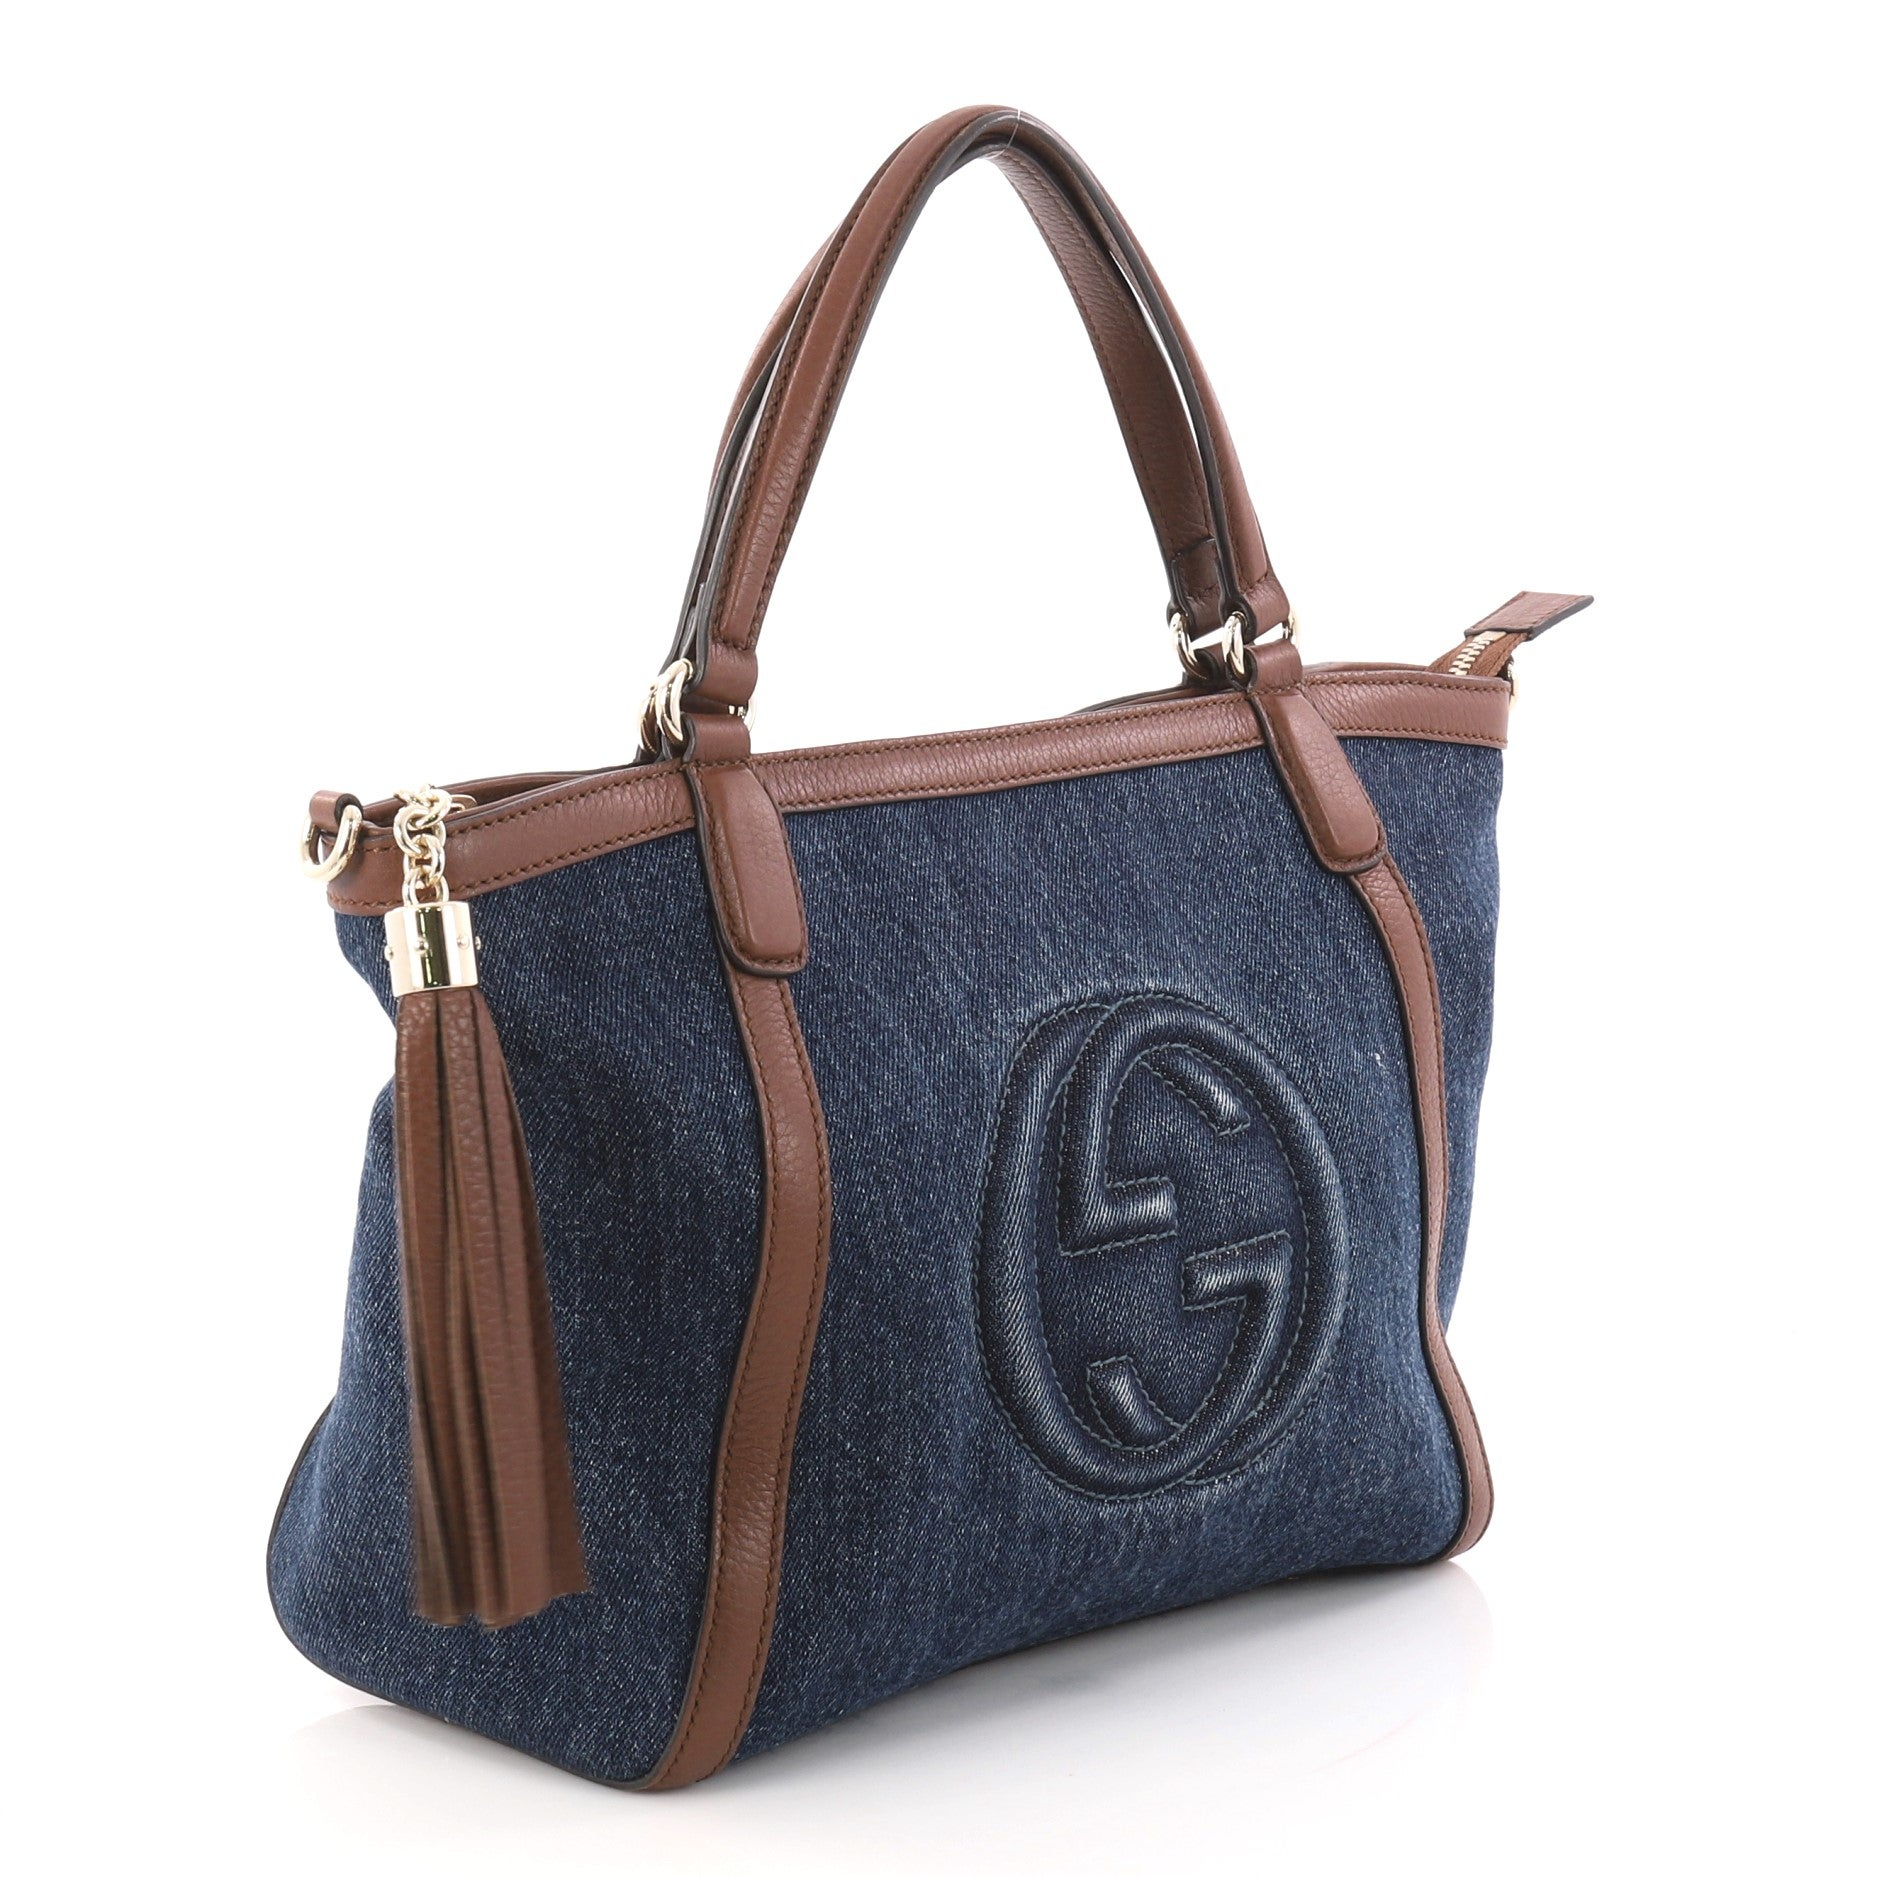 5b3b9d091def Gucci Soho Convertible Top Handle Bag Denim Small at 1stdibs